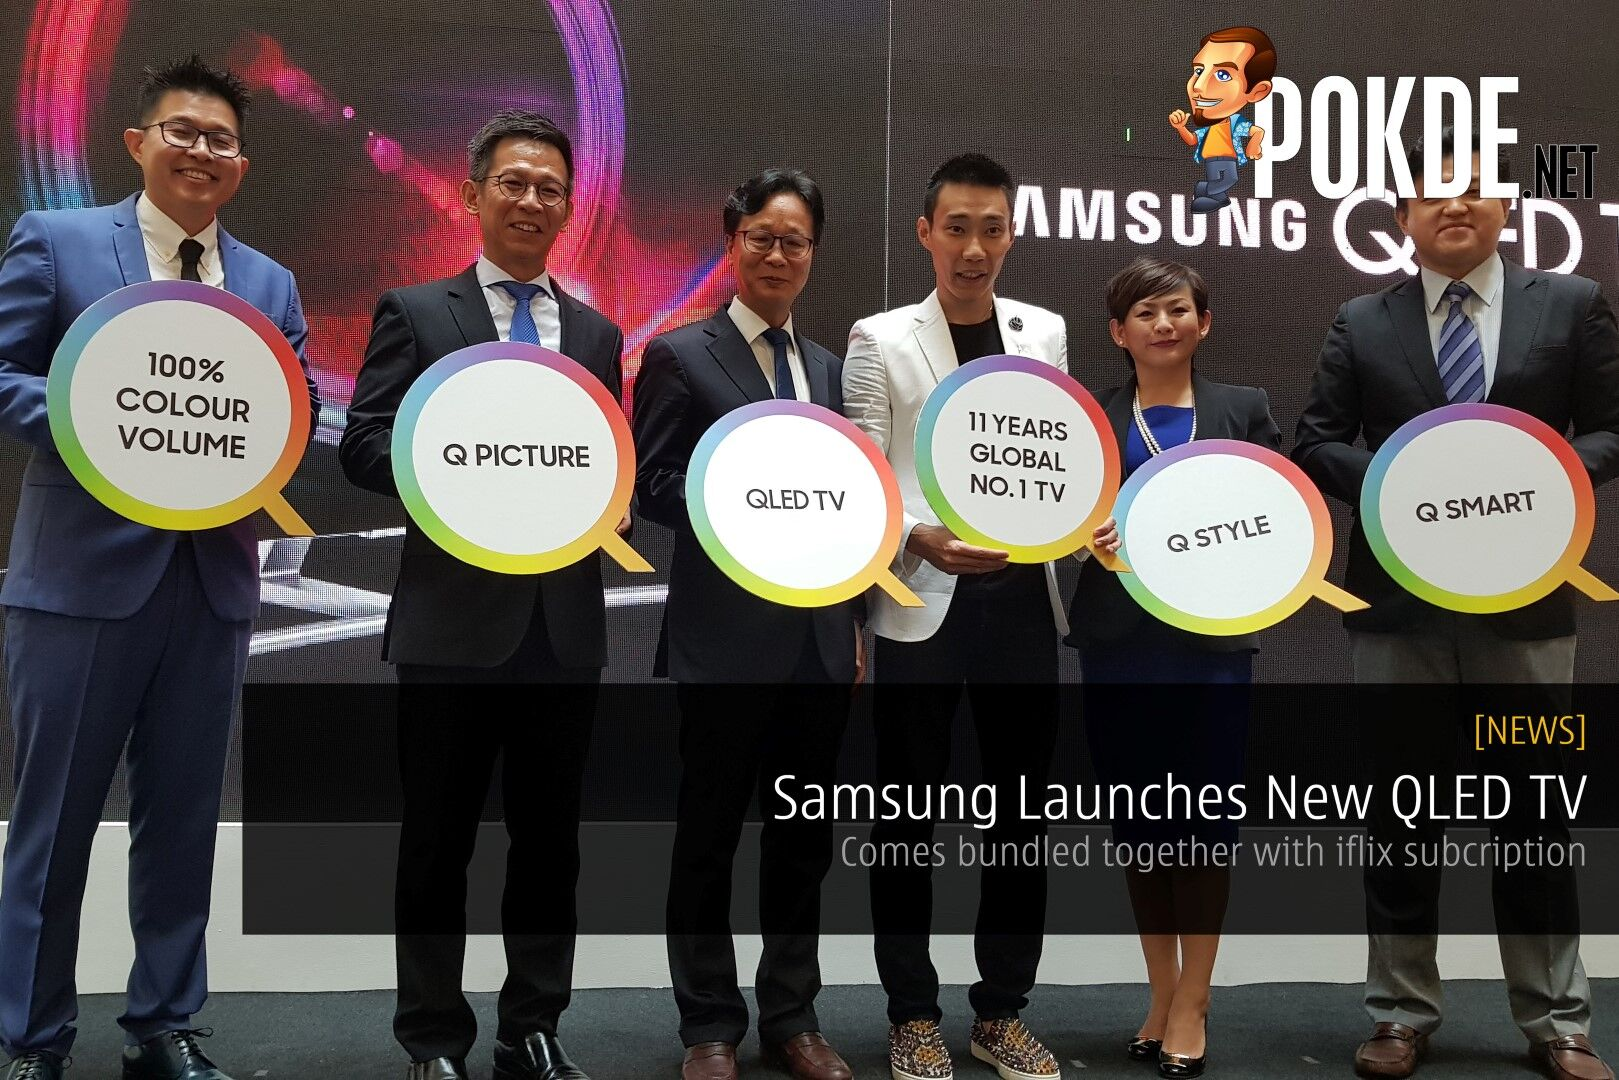 Samsung Launches New QLED TV - Comes bundled together with iflix subcription 17